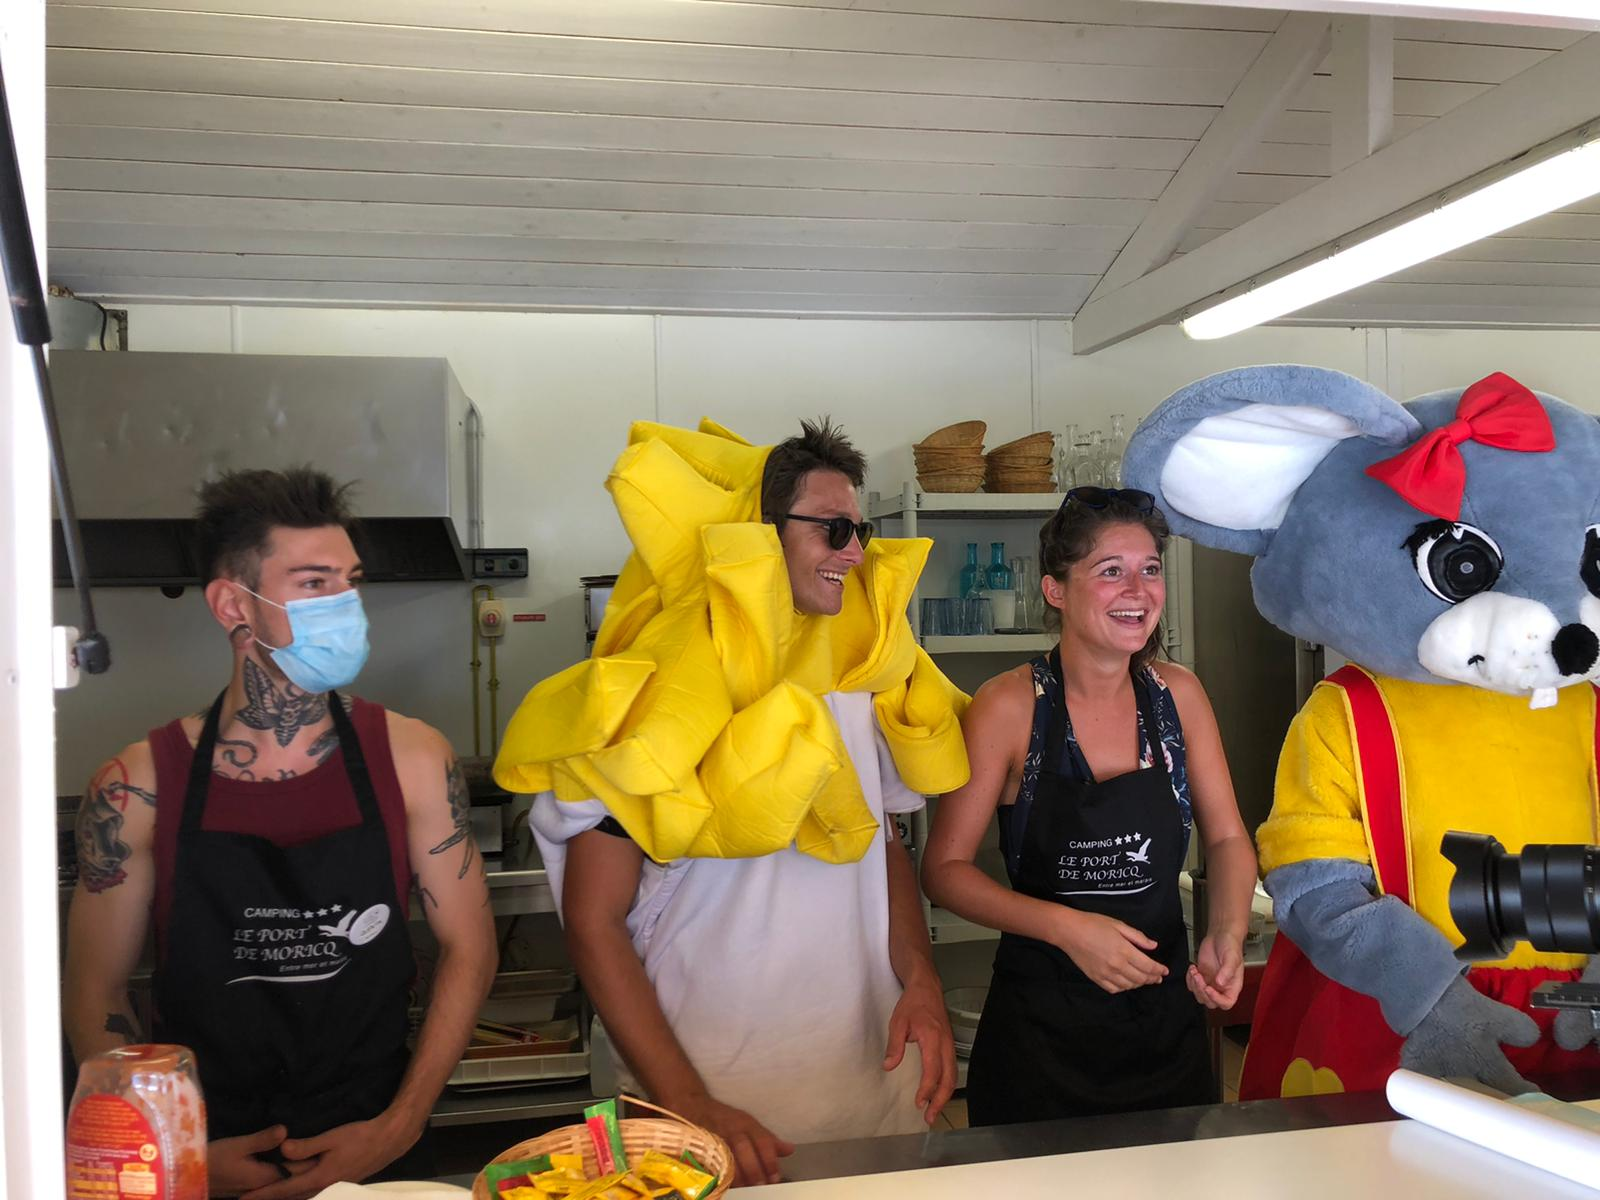 galerie-photos-ambiance-snack-camping-le-port-de-moricq